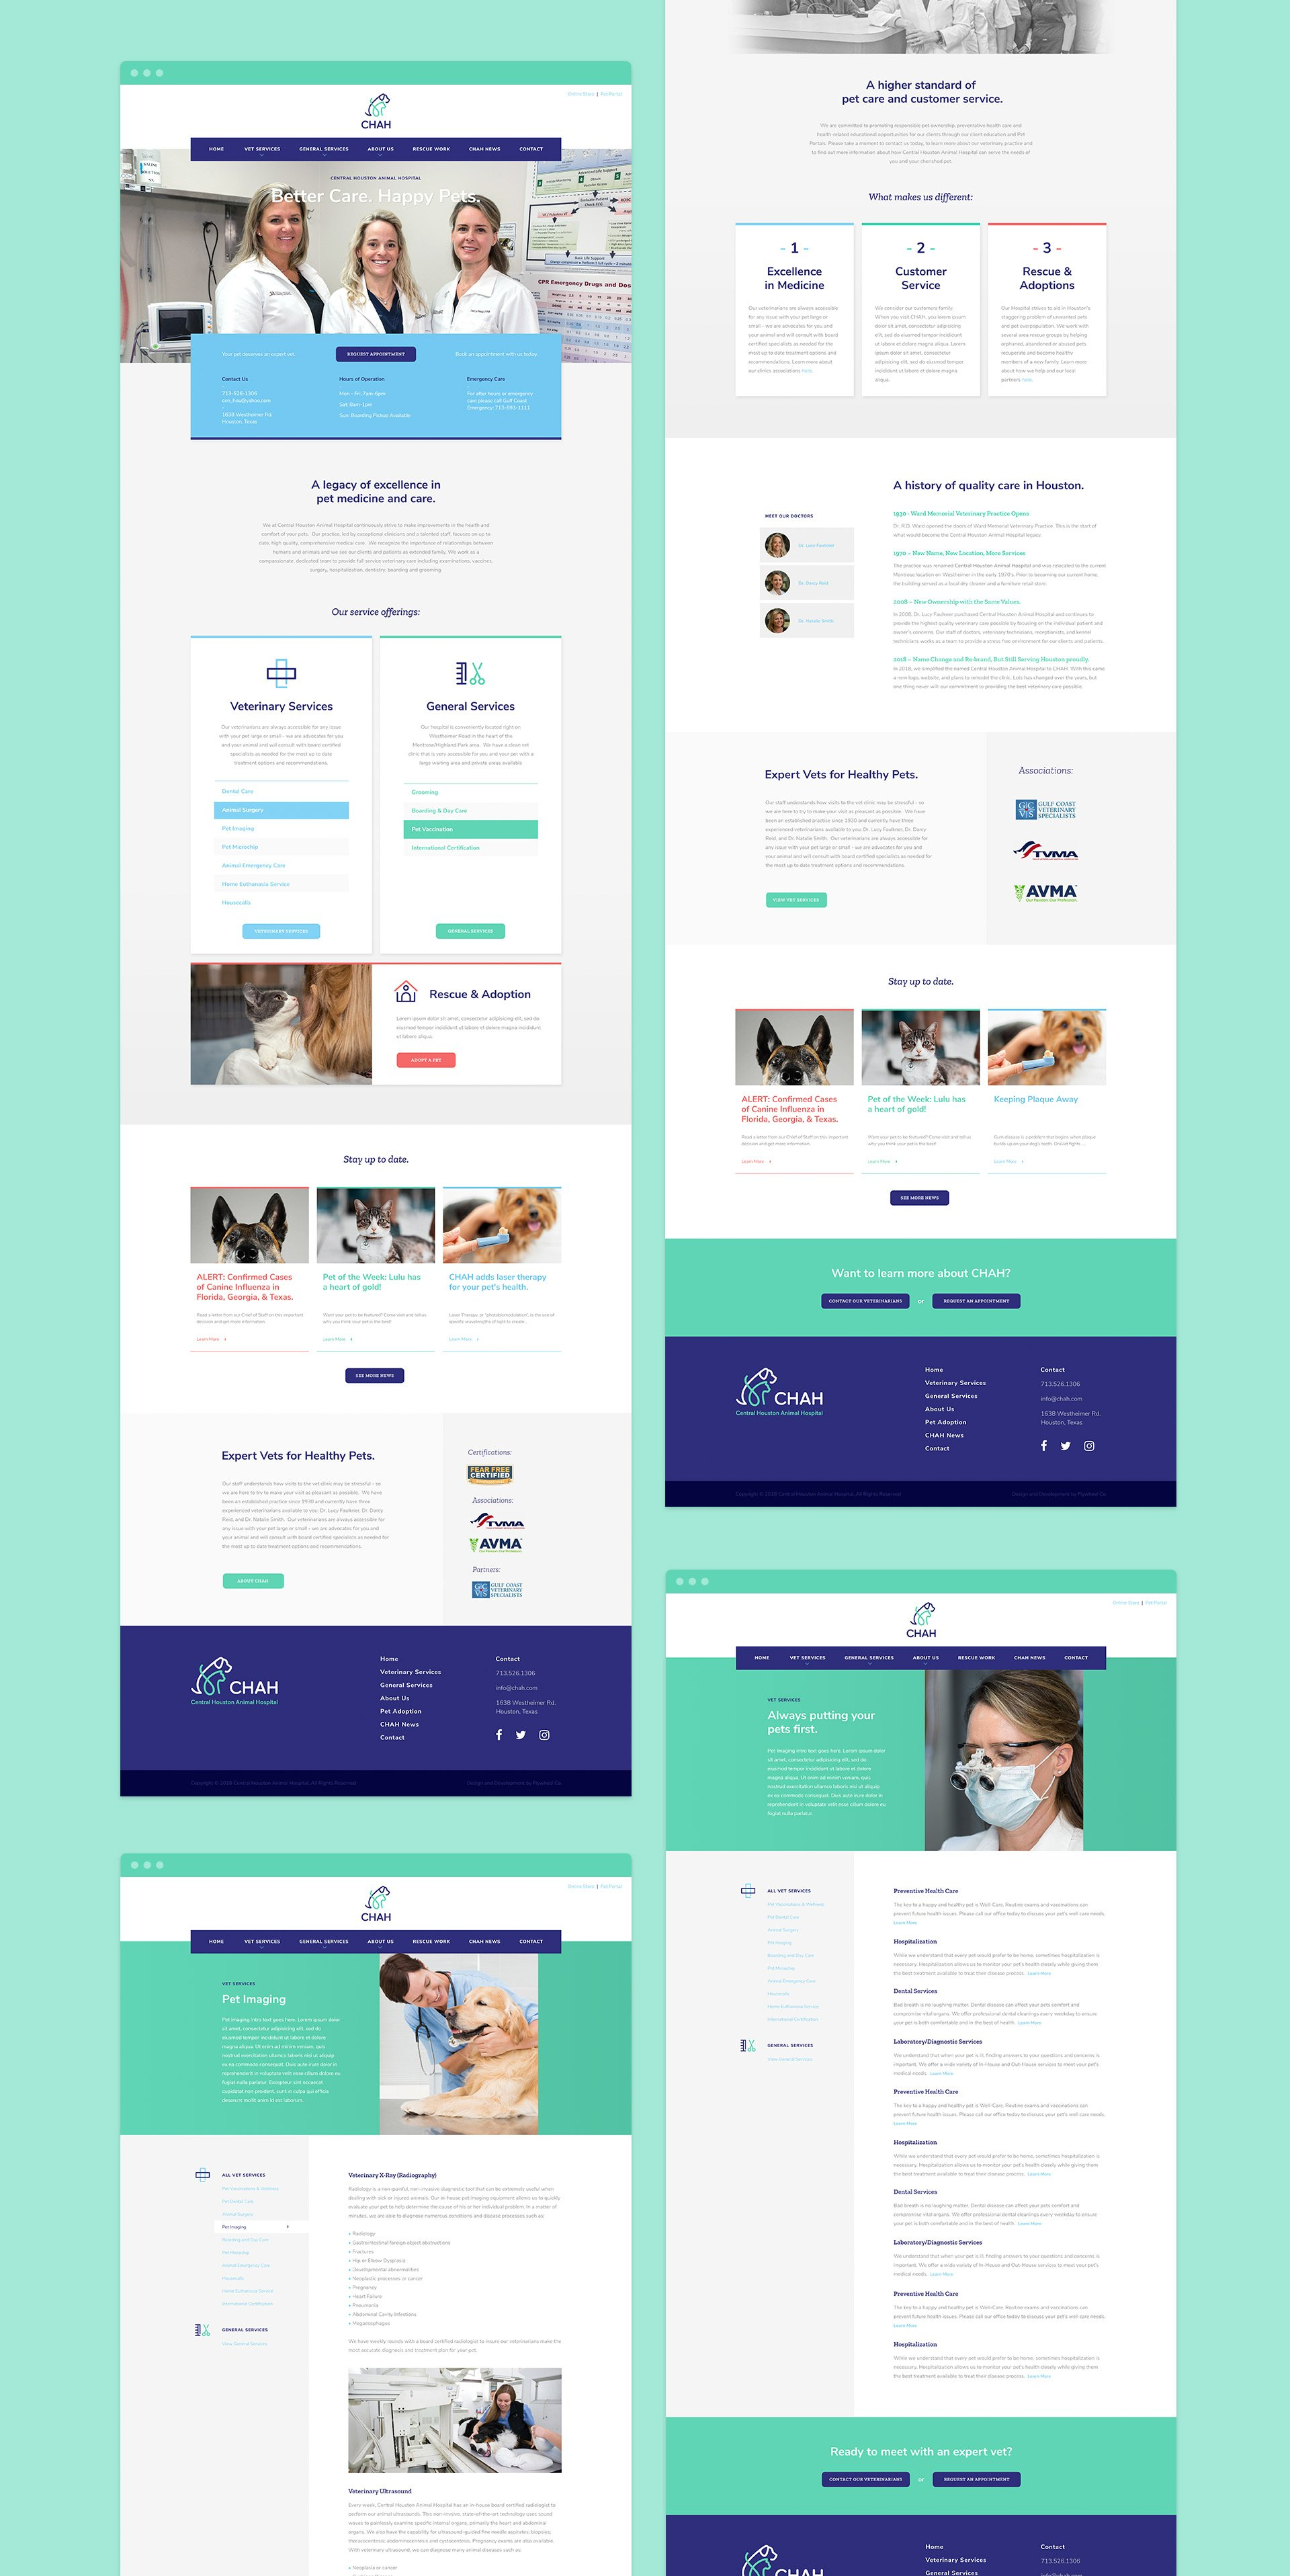 CHAH website design collage